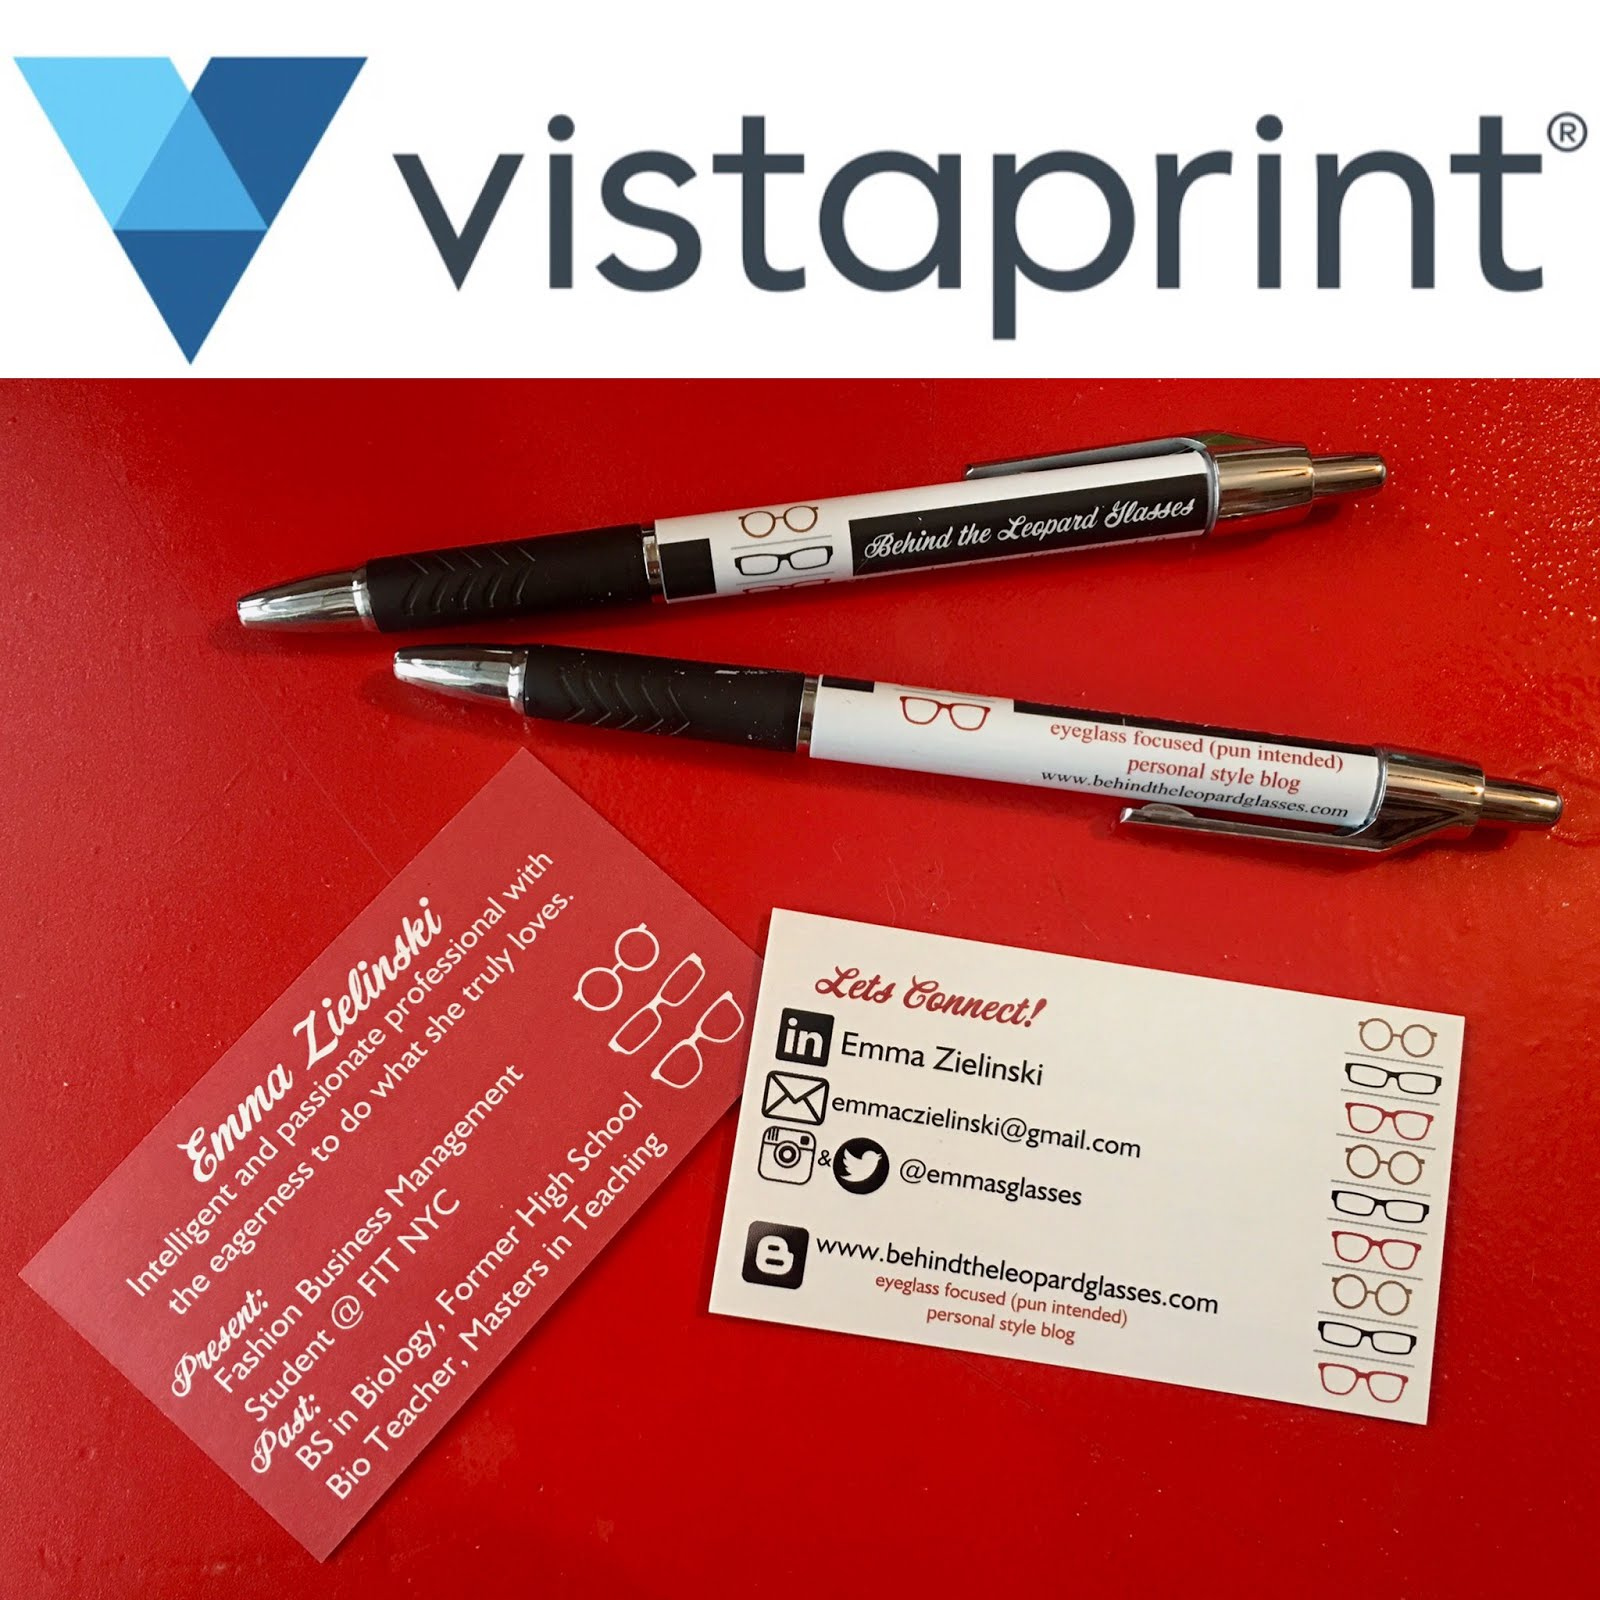 Love Vistaprint for business cards & merch!